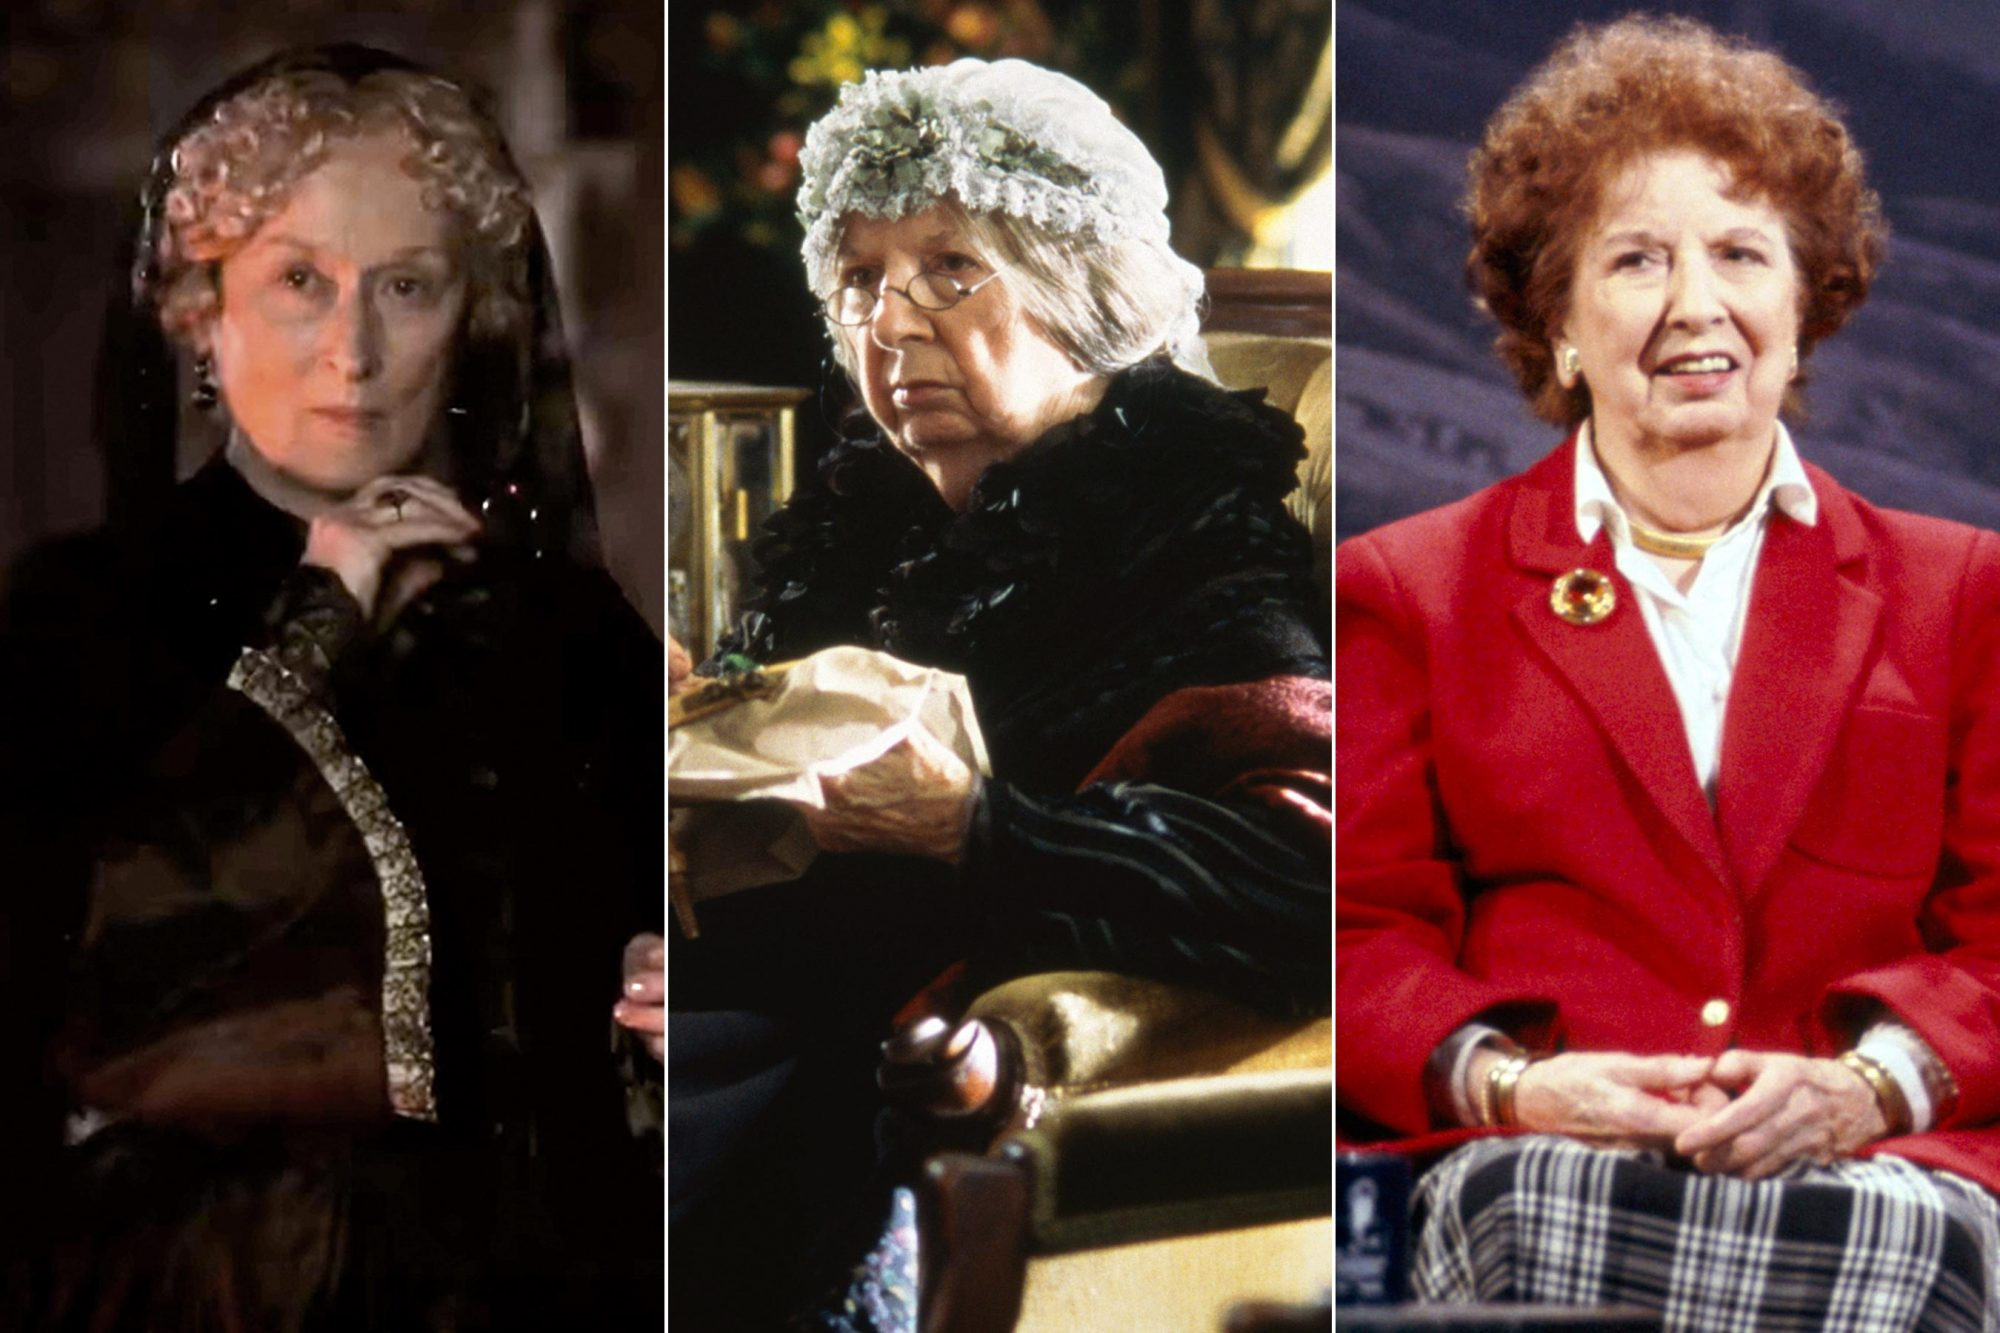 Meryl Streep, Mary Wickes and Lucile Watson as Aunt March